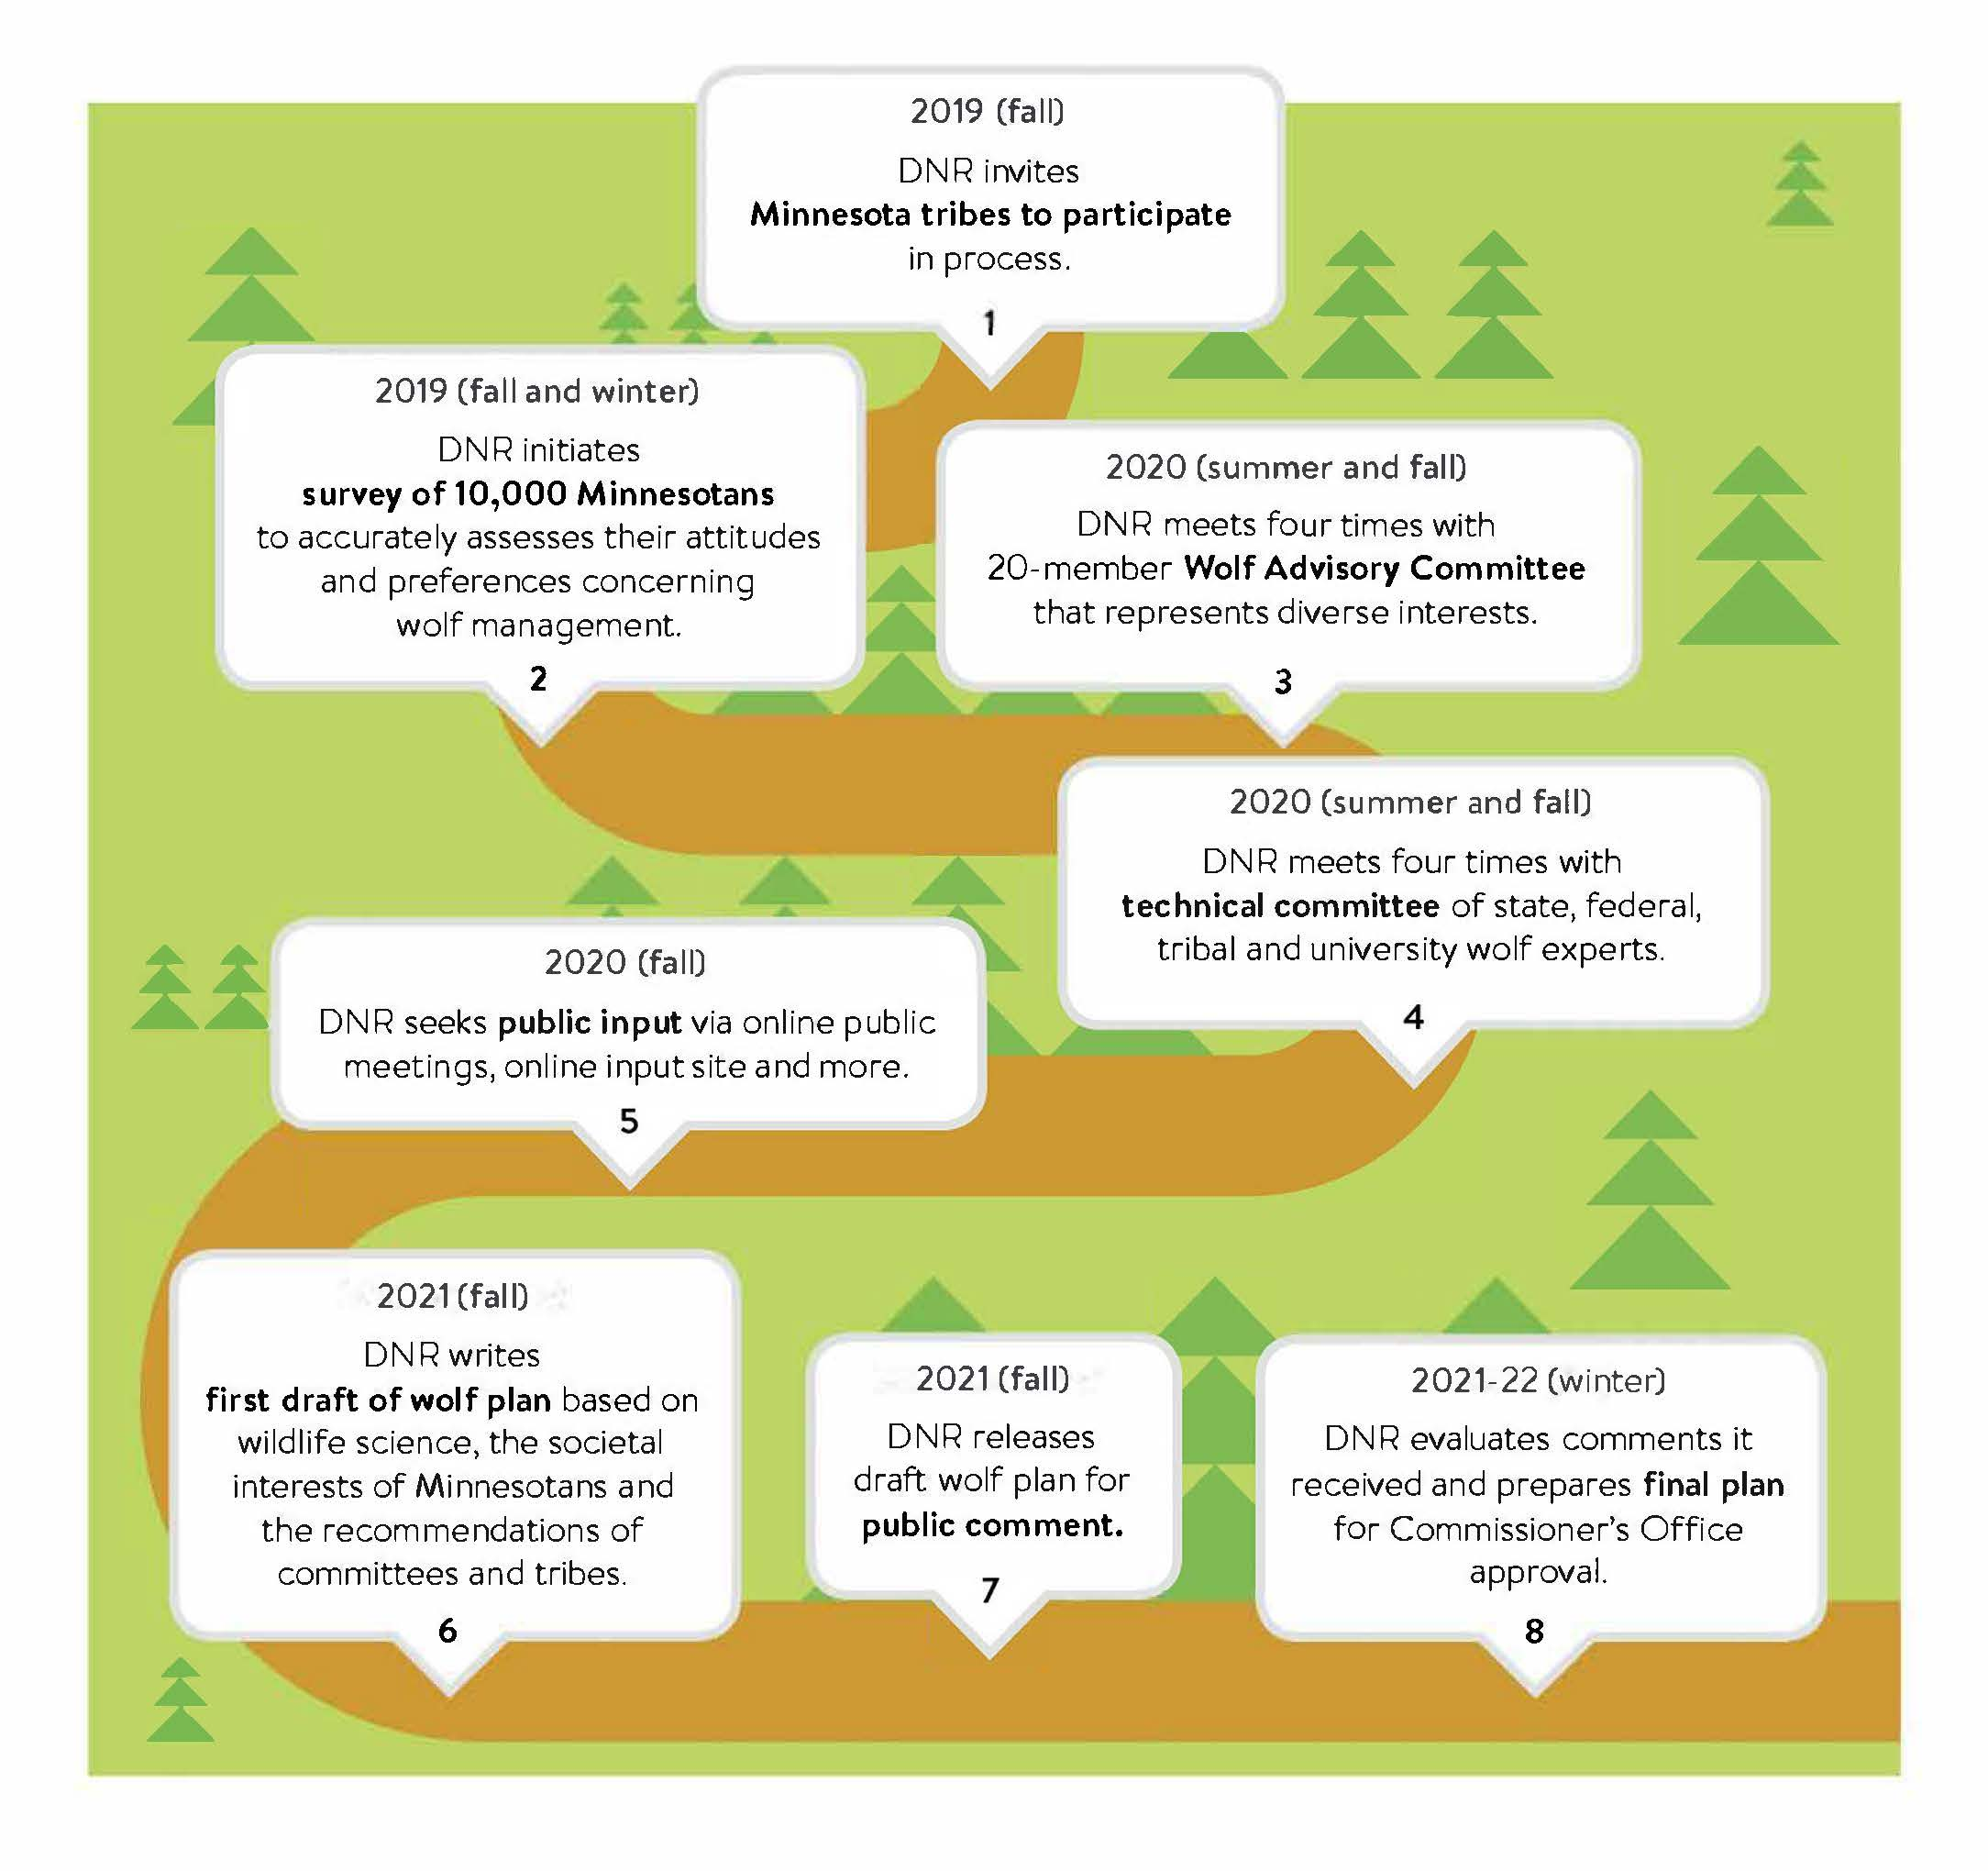 Path to update graphic with trail and bubbles that state: 2019 fall DNR invites Minnesota tribes to participate in process; 2019 fall and winter DNR initiates survey of 10,000 Minnesotans to accurately assesses their attitudes and preferences concerning wolf management. 2 2020 summer and fall DNR meets four times with 20-member Wolf Advisory Committee that represents diverse interests. 2020 fall DNR seeks public input via online public meetings, online input site and more. 5 2020 summer and fall DNR meets four times with technical committee of state, federal, tribal and university wolf experts. 4 2021 summer, DNR writes first draft of wolf plan based on wildlife science, the societal interests of Minnesotans and the recommendations of committees and tribes. 6 2021 summer, DNR releases draft wolf plan for public comment.7 2021 fall DNR evaluates comments it received and prepares final plan for Commissioner's Office approval. 8